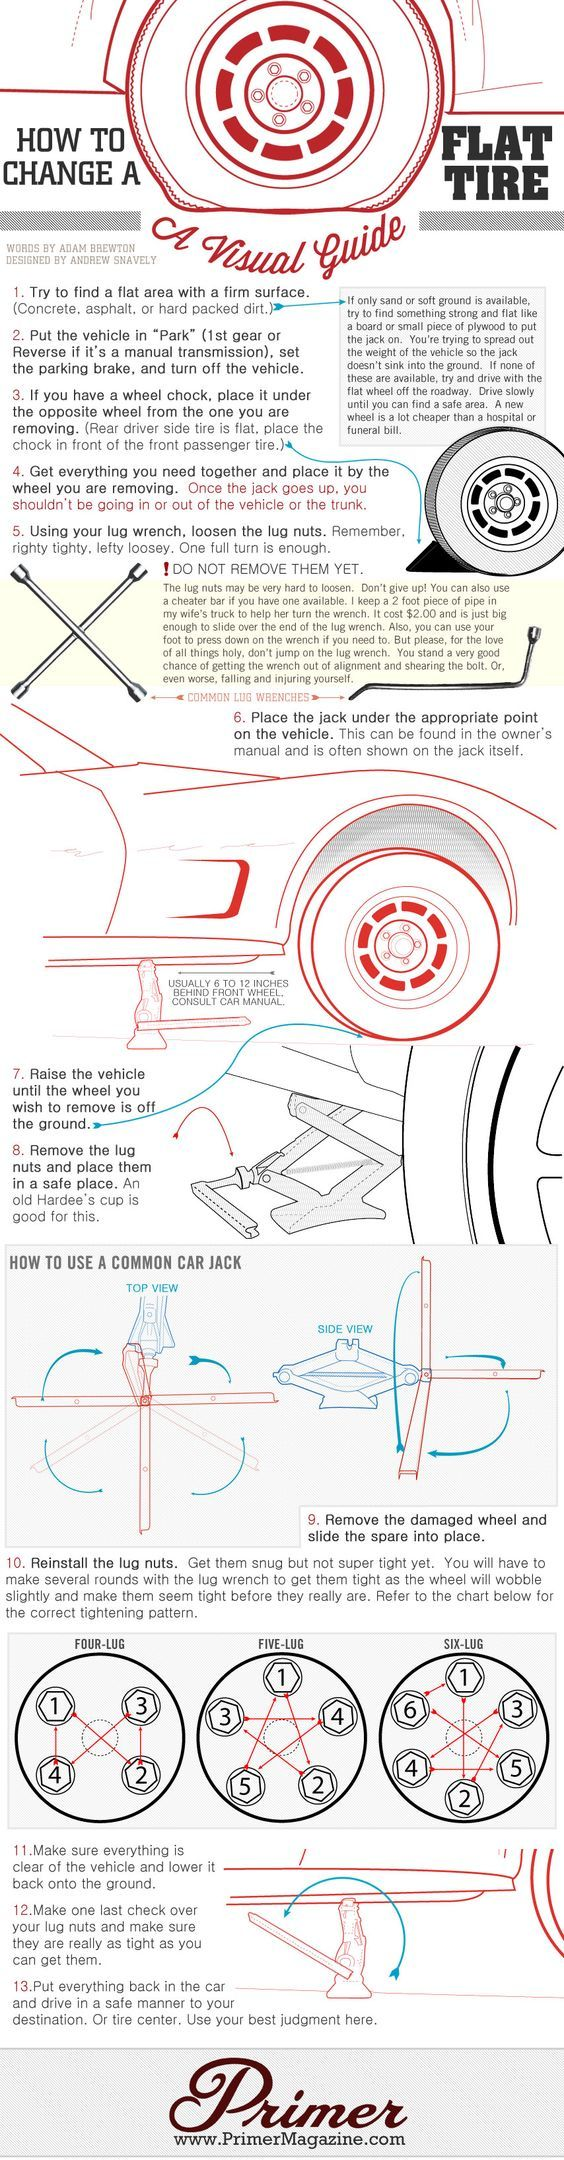 medium resolution of how to change a flat tire visual guide yes a properly running car is a fabulous accessory